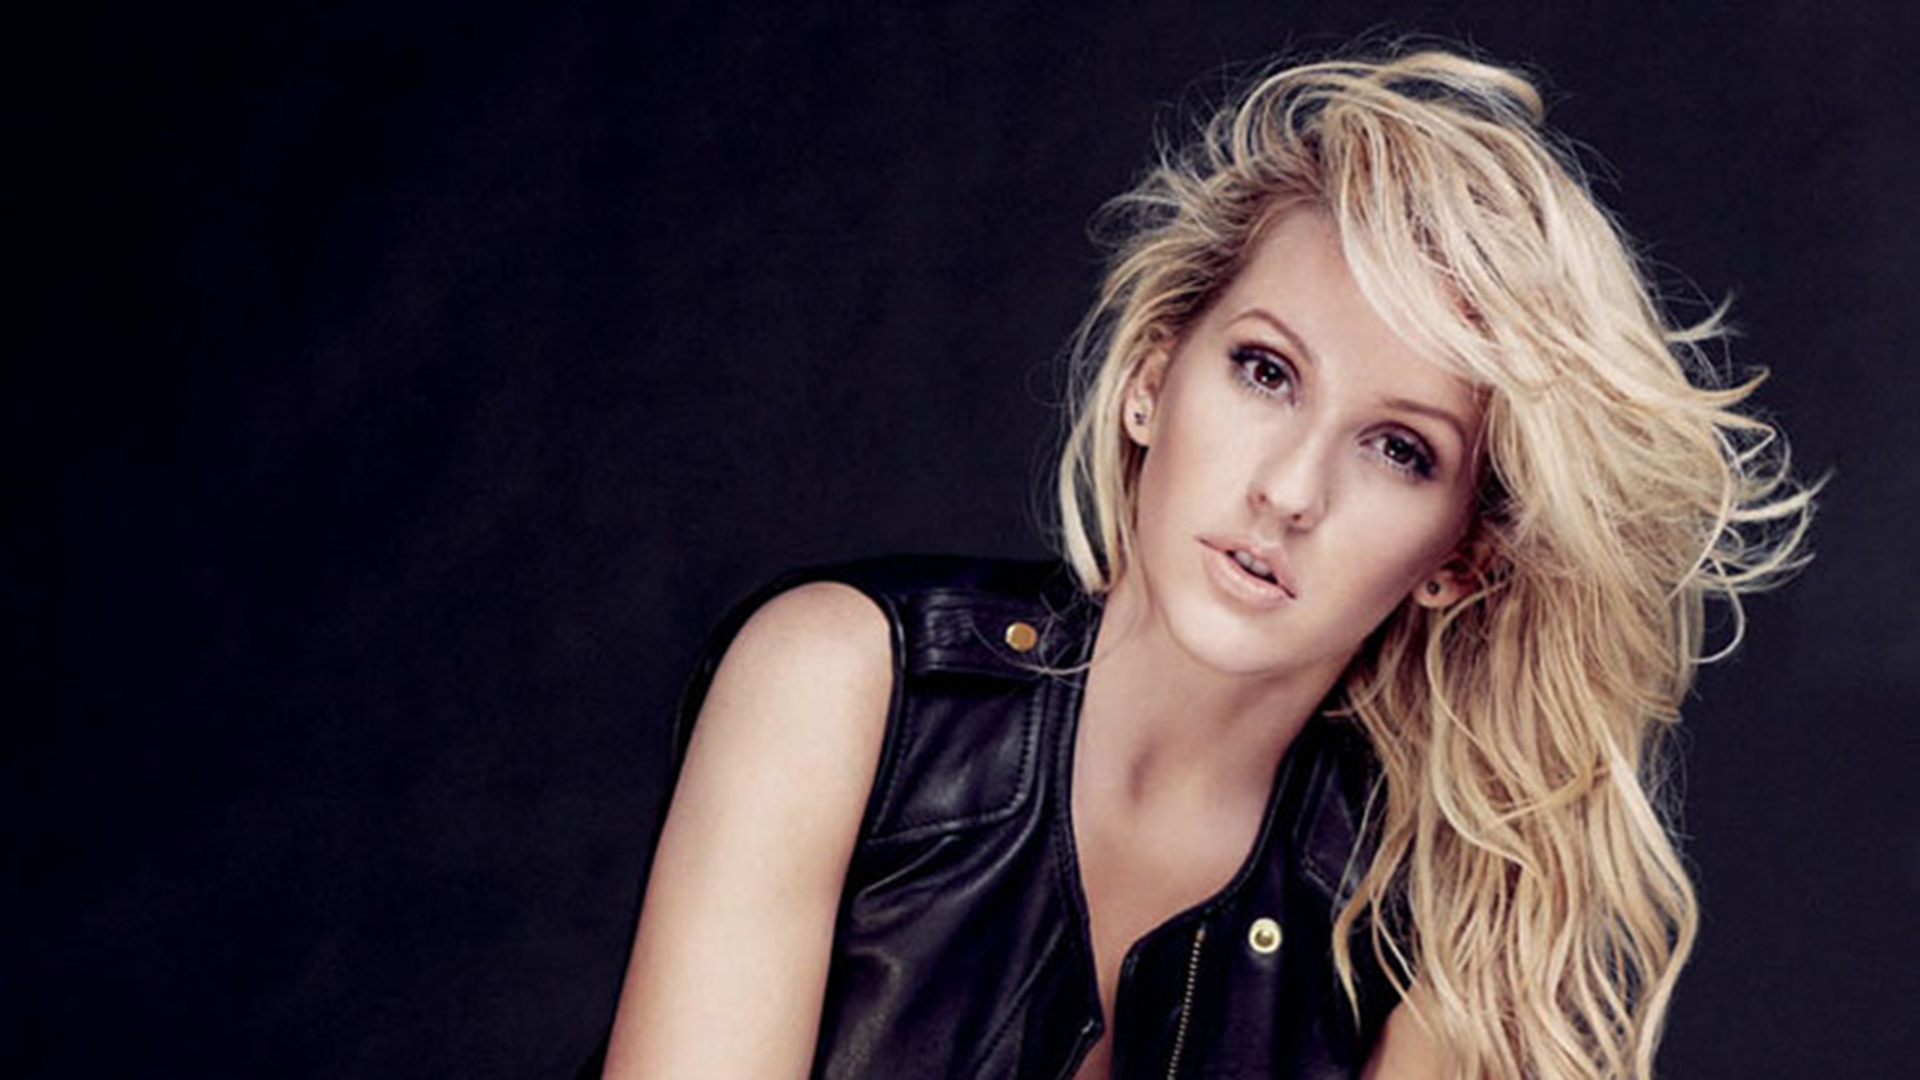 Ellie Goulding Wallpaper Free